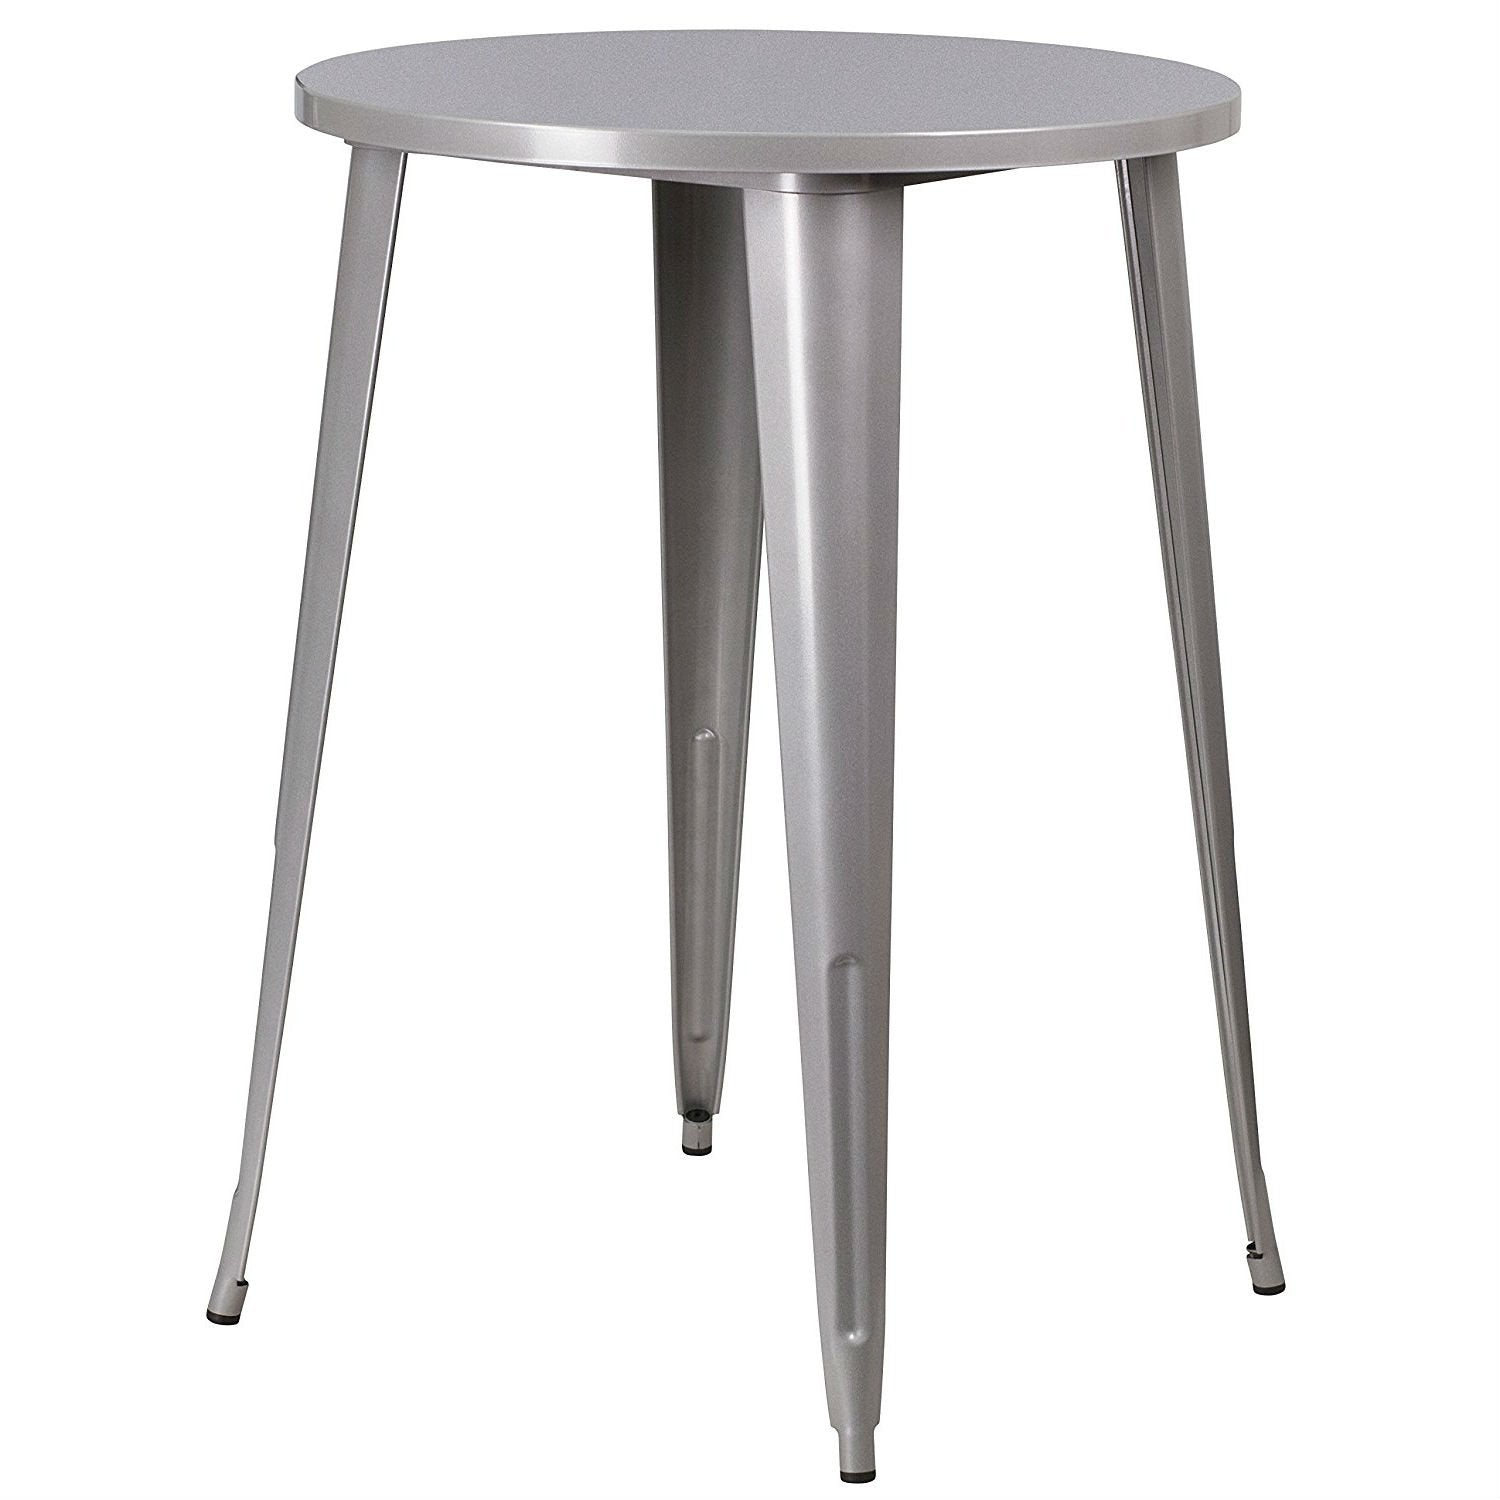 Outdoor 30-inch Round Metal Cafe Bar Patio Table in Silver